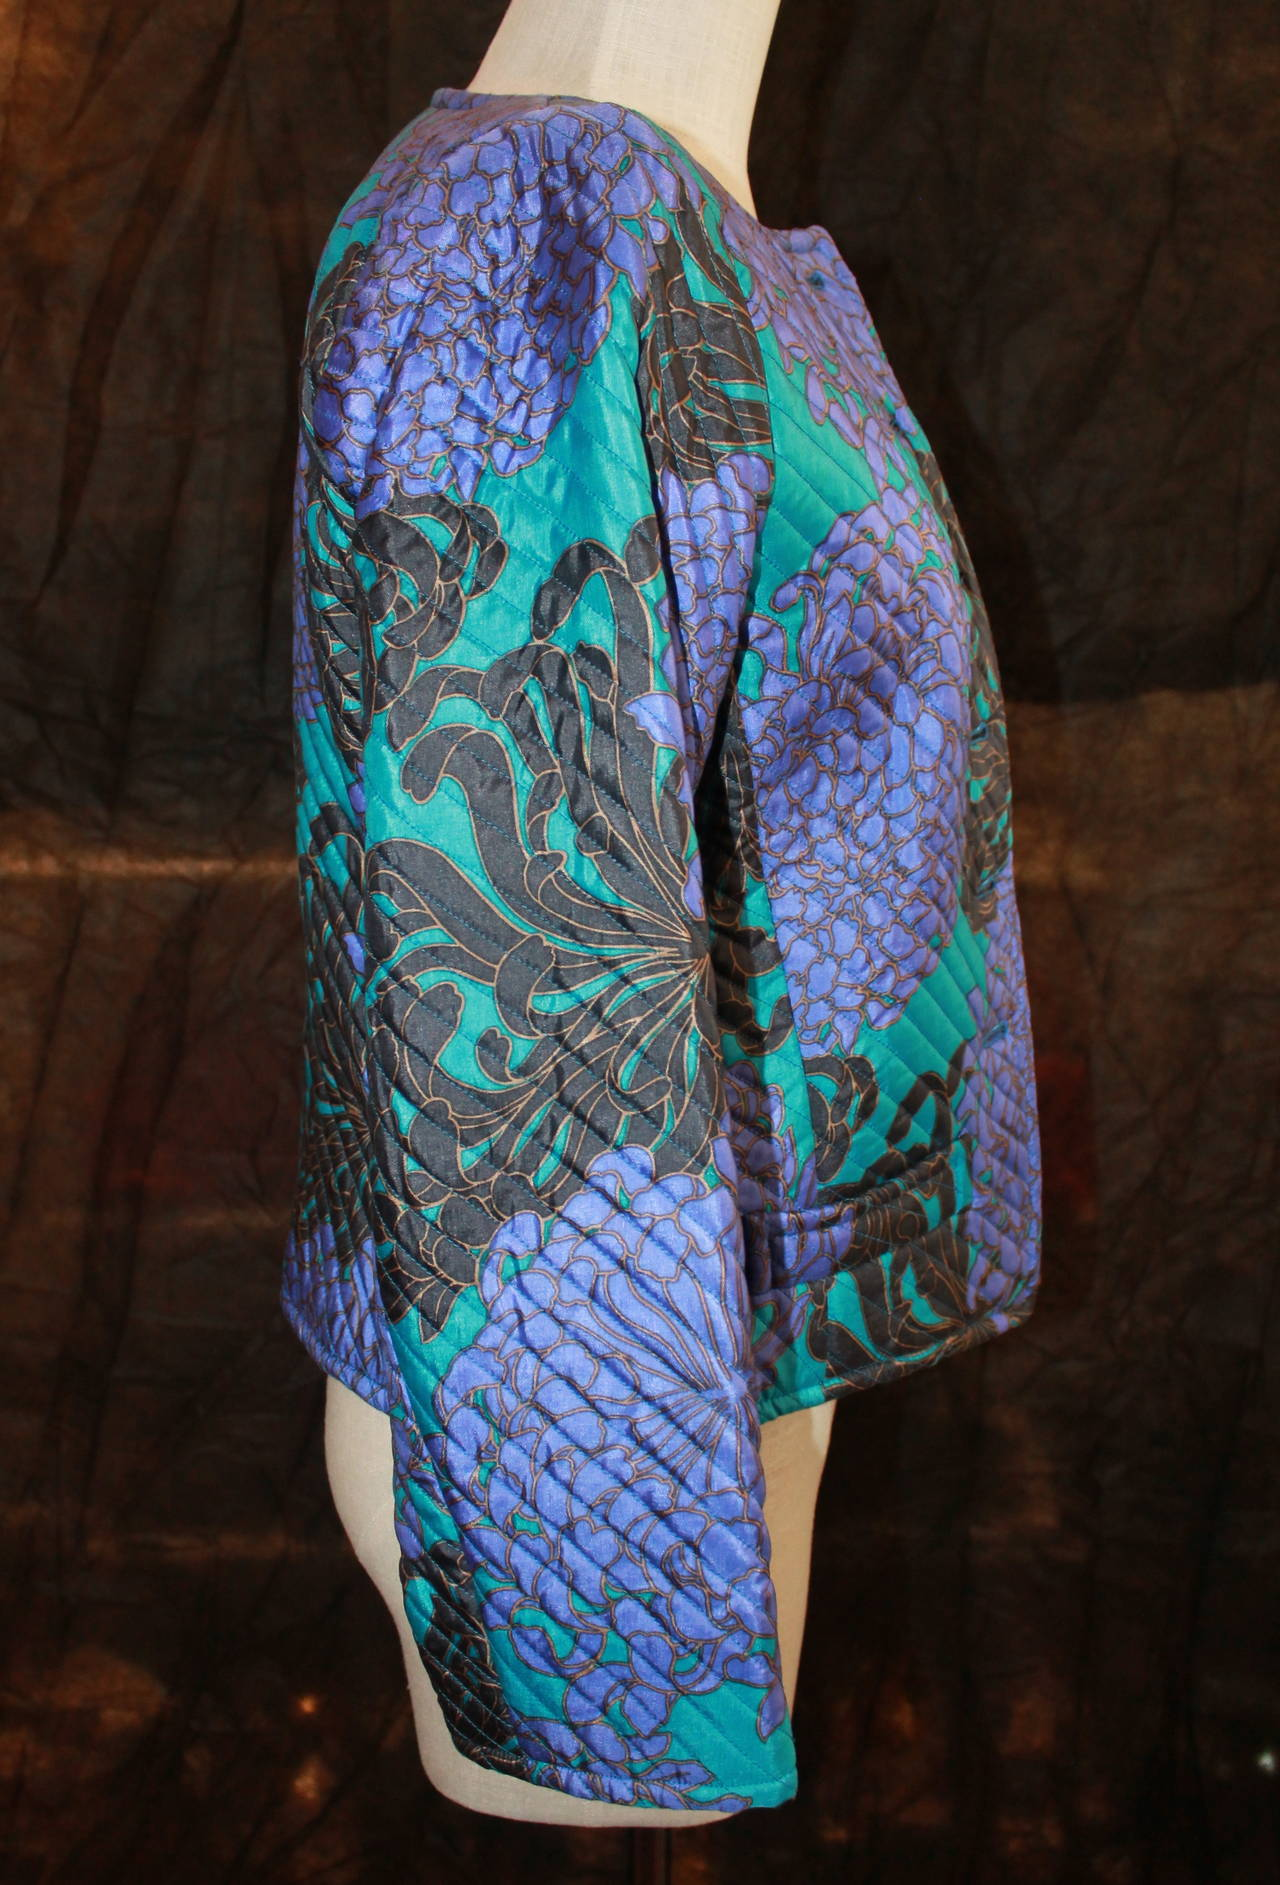 YSL 1960's Blue & Violet Floral Print Quilted Jacket - vintage size 42 In Excellent Condition For Sale In Palm Beach, FL